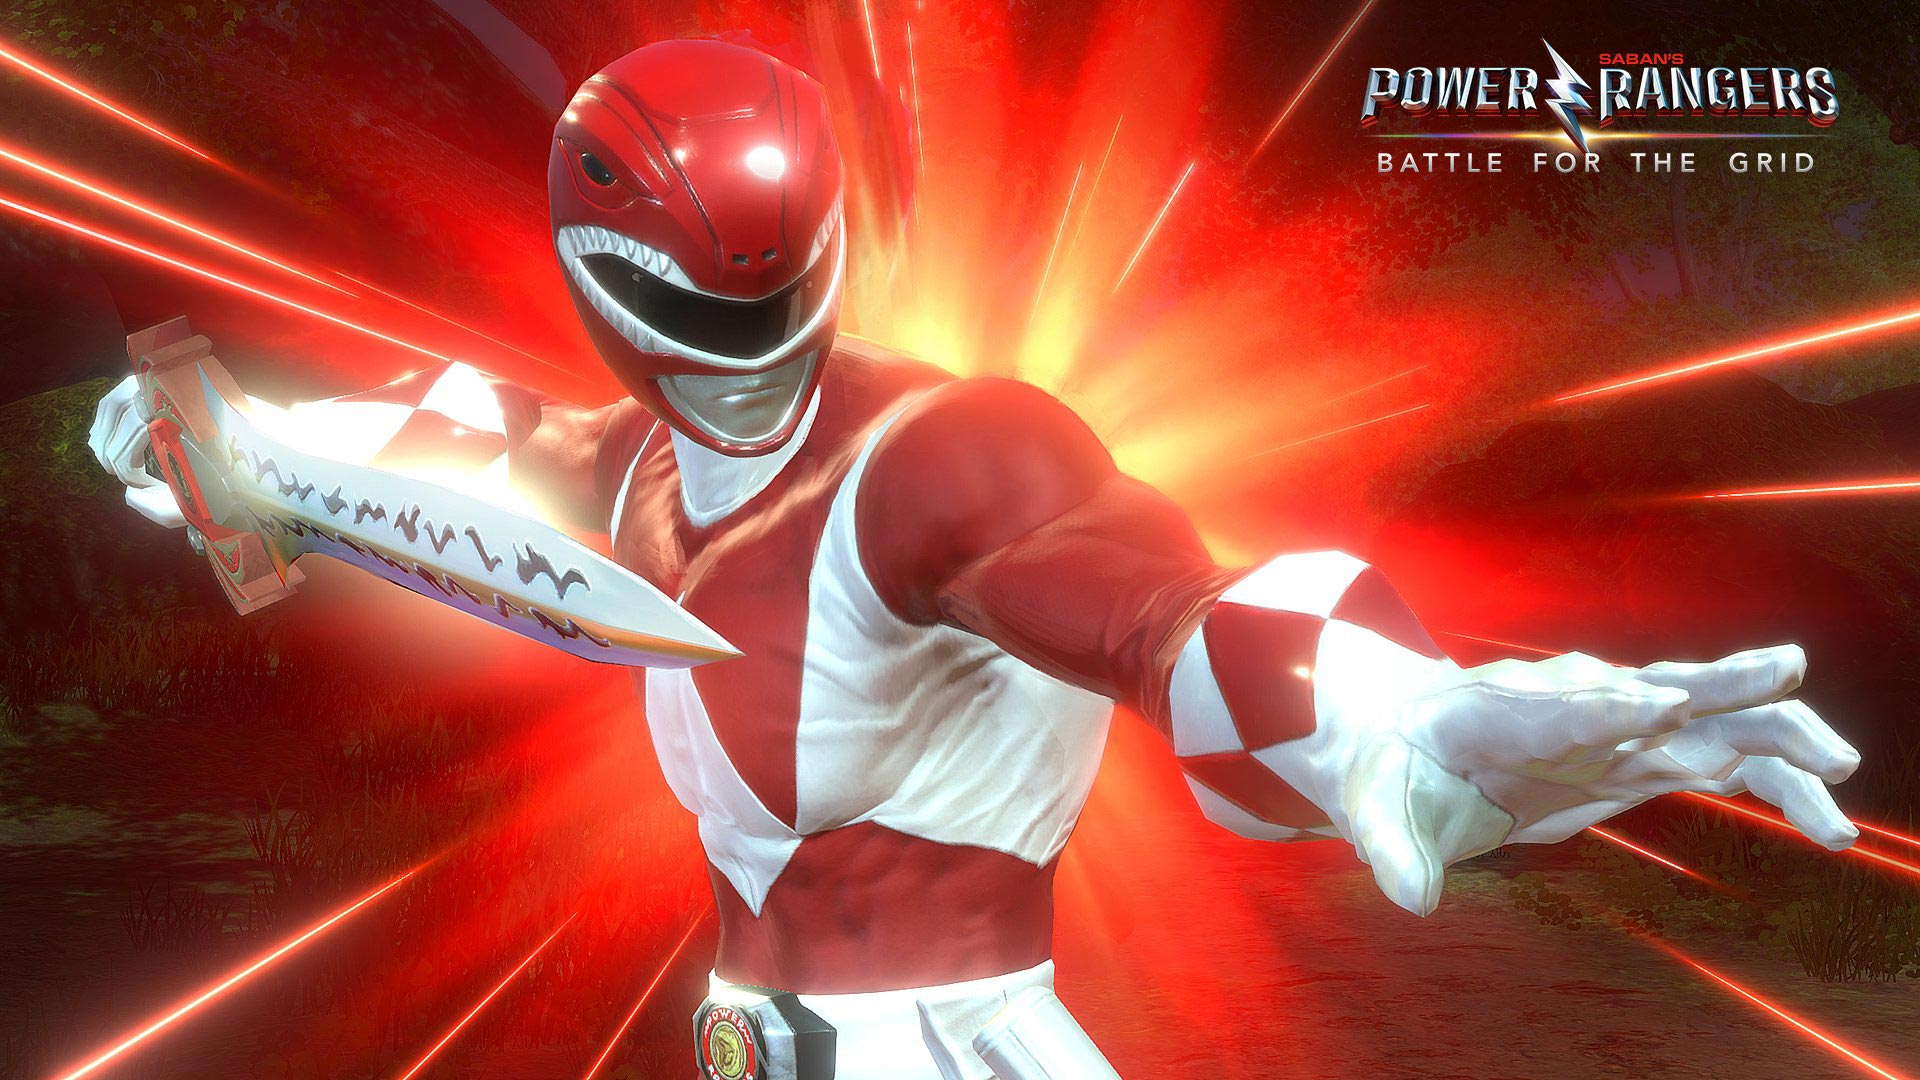 Power Rangers Battle for the Grid official screens 5 out of 6 image gallery